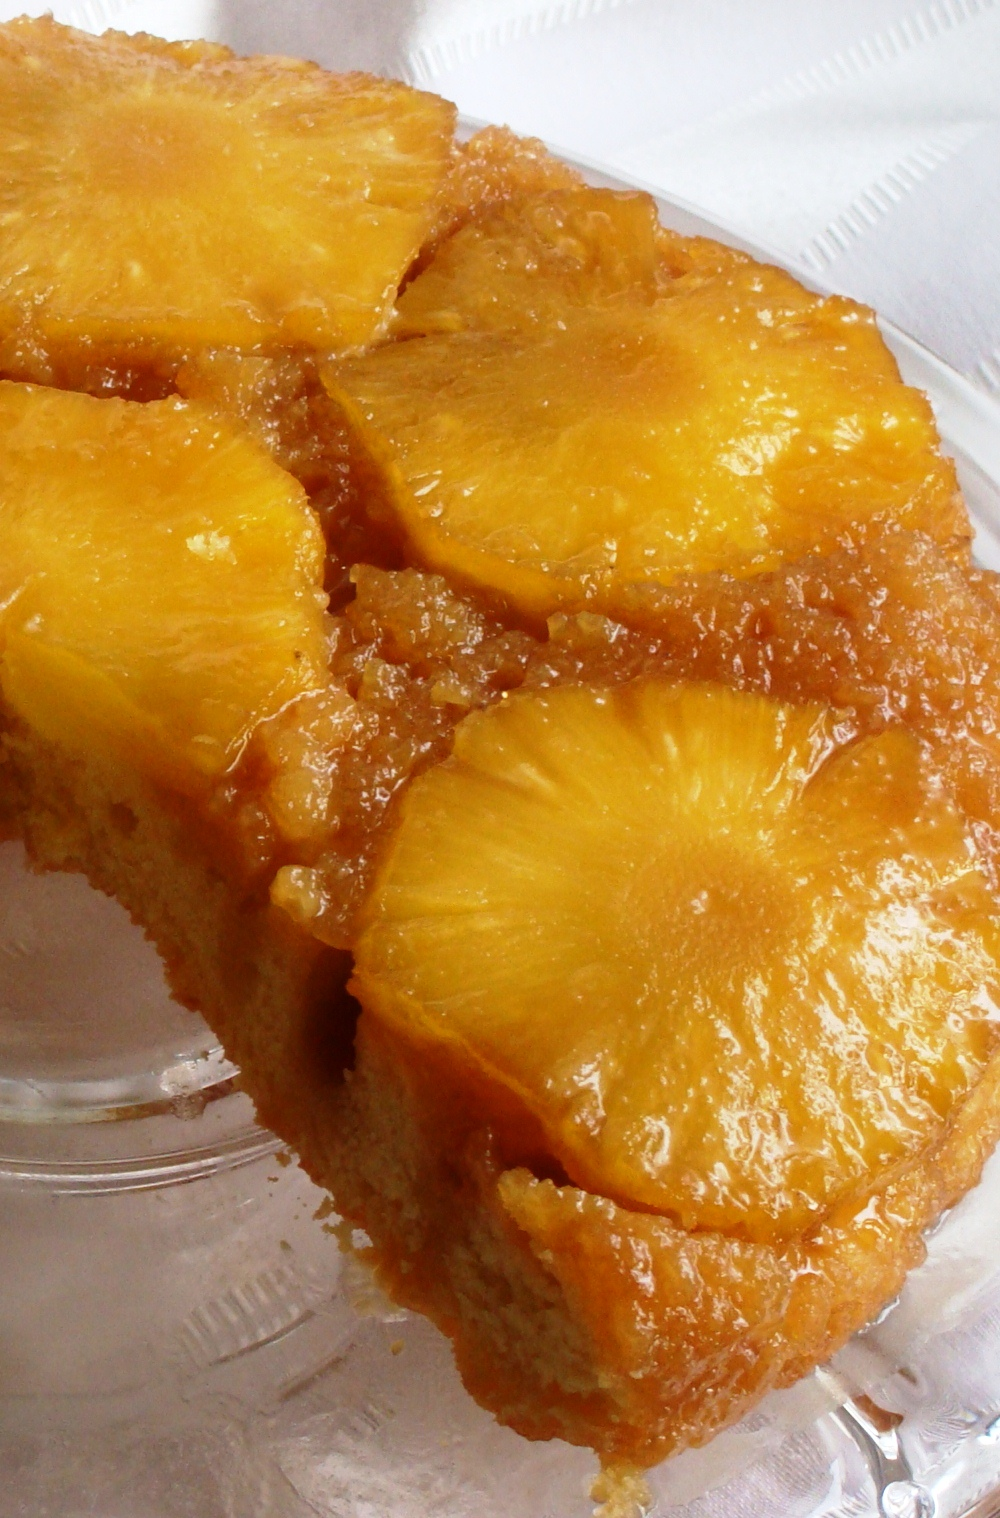 Pineapple Upside Down Cake Recipe - The best, most tender and delicious Pineapple Upside Down Cake! Pineapple Upside Down Cake is a classic American Cake made with a moist cake batter and a flavorful buttery topping ofpineapplerings